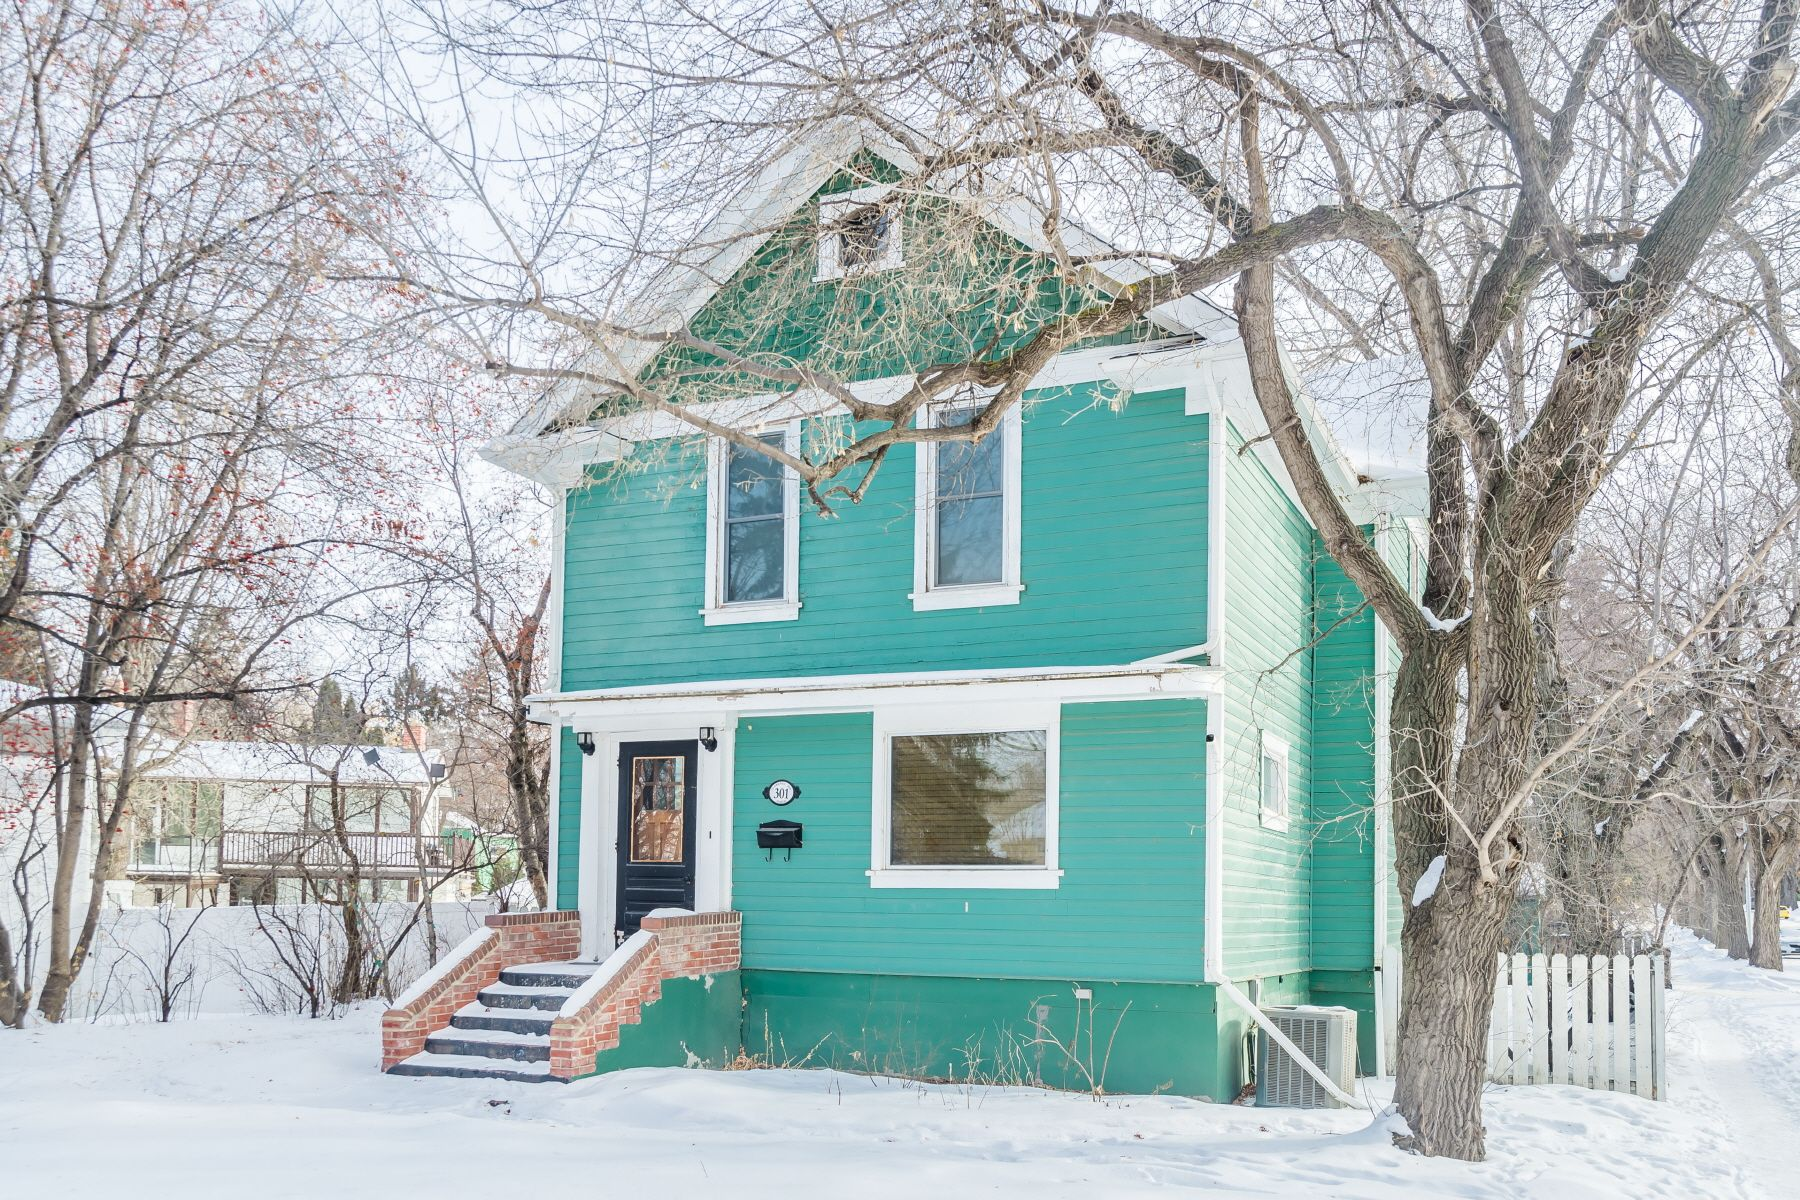 Main Photo: 301 Clarence Avenue North in Saskatoon: Varsity View Residential for sale : MLS®# SK719651